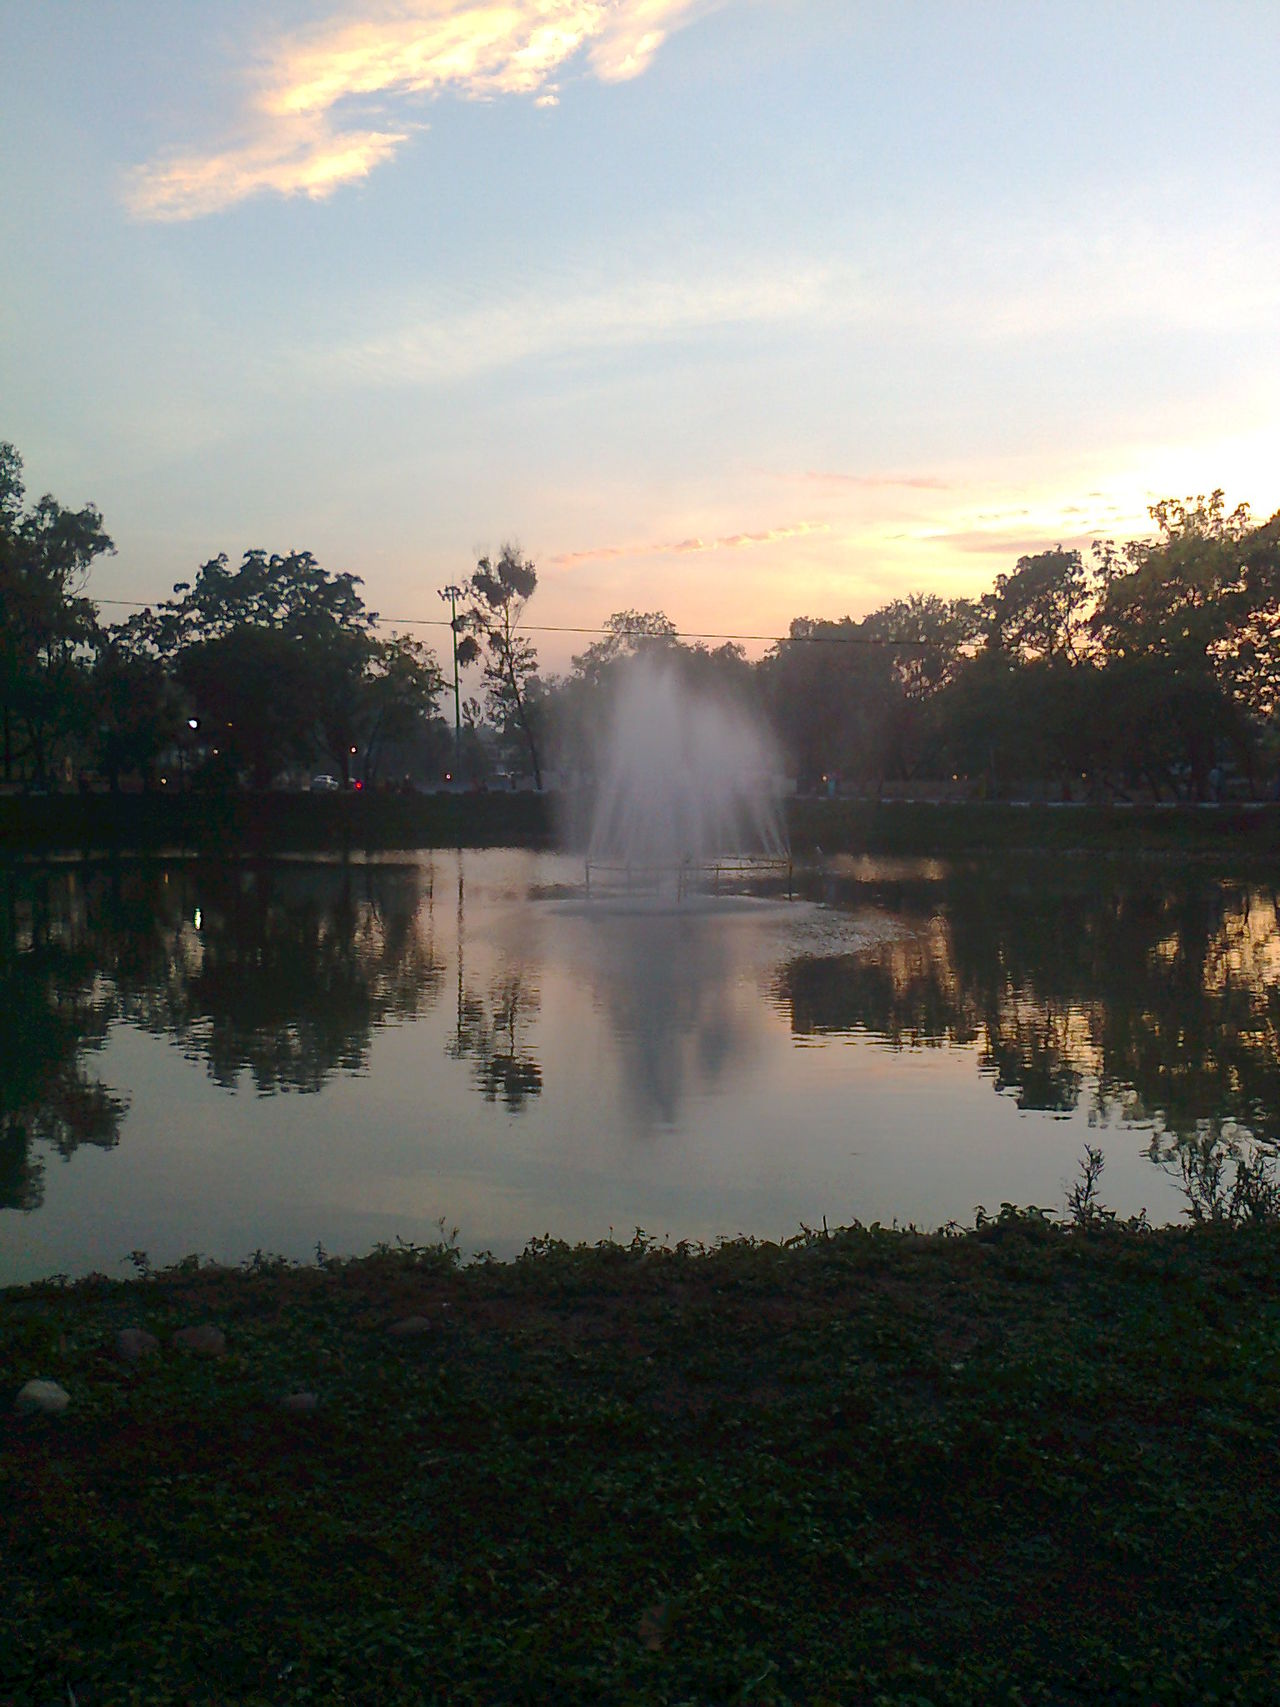 Fountain Nature Outdoors Reflection Reflection Scenics Sskycloudc Sunset Water